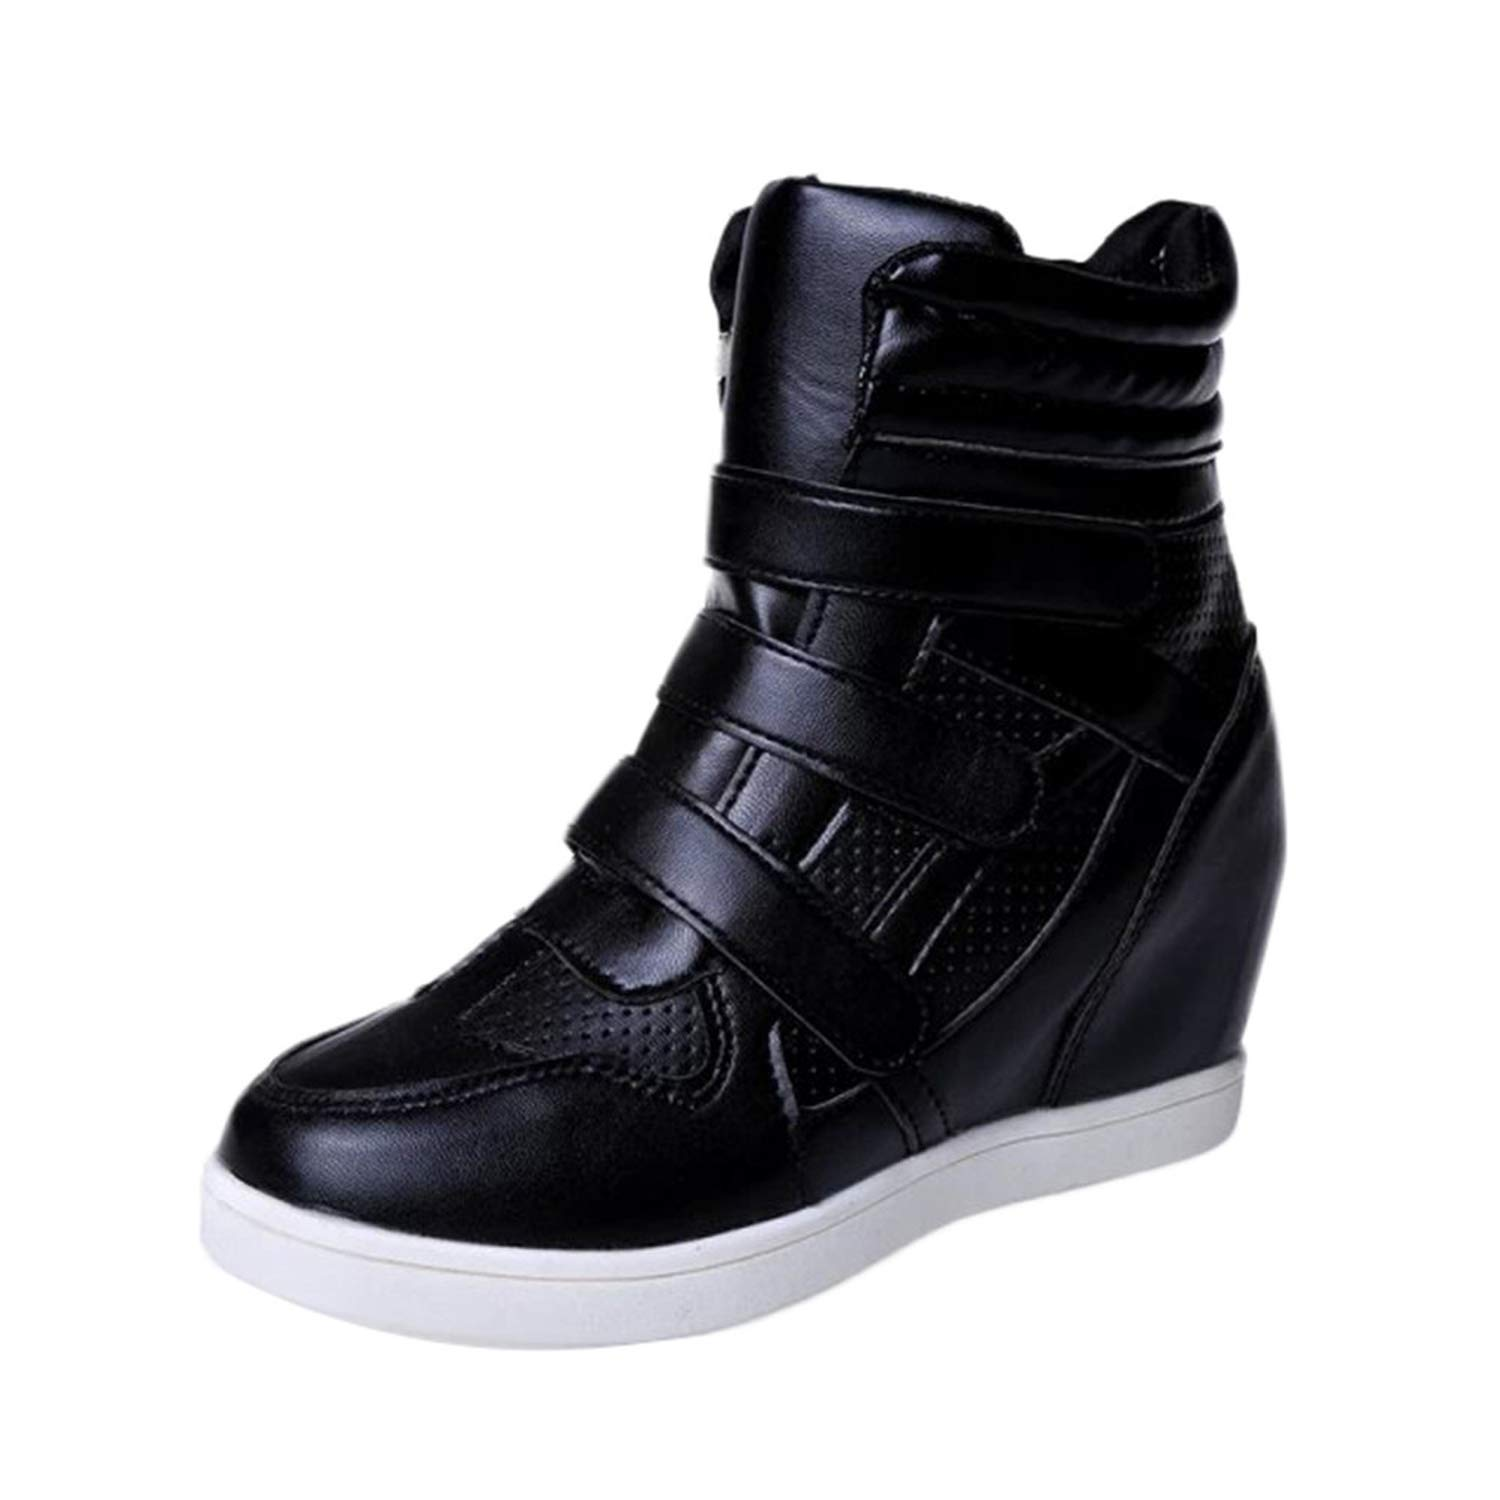 a few days away release date: new cheap Henraly Women Ankle Winter Boots 2019 Leather Thick Bottom ...